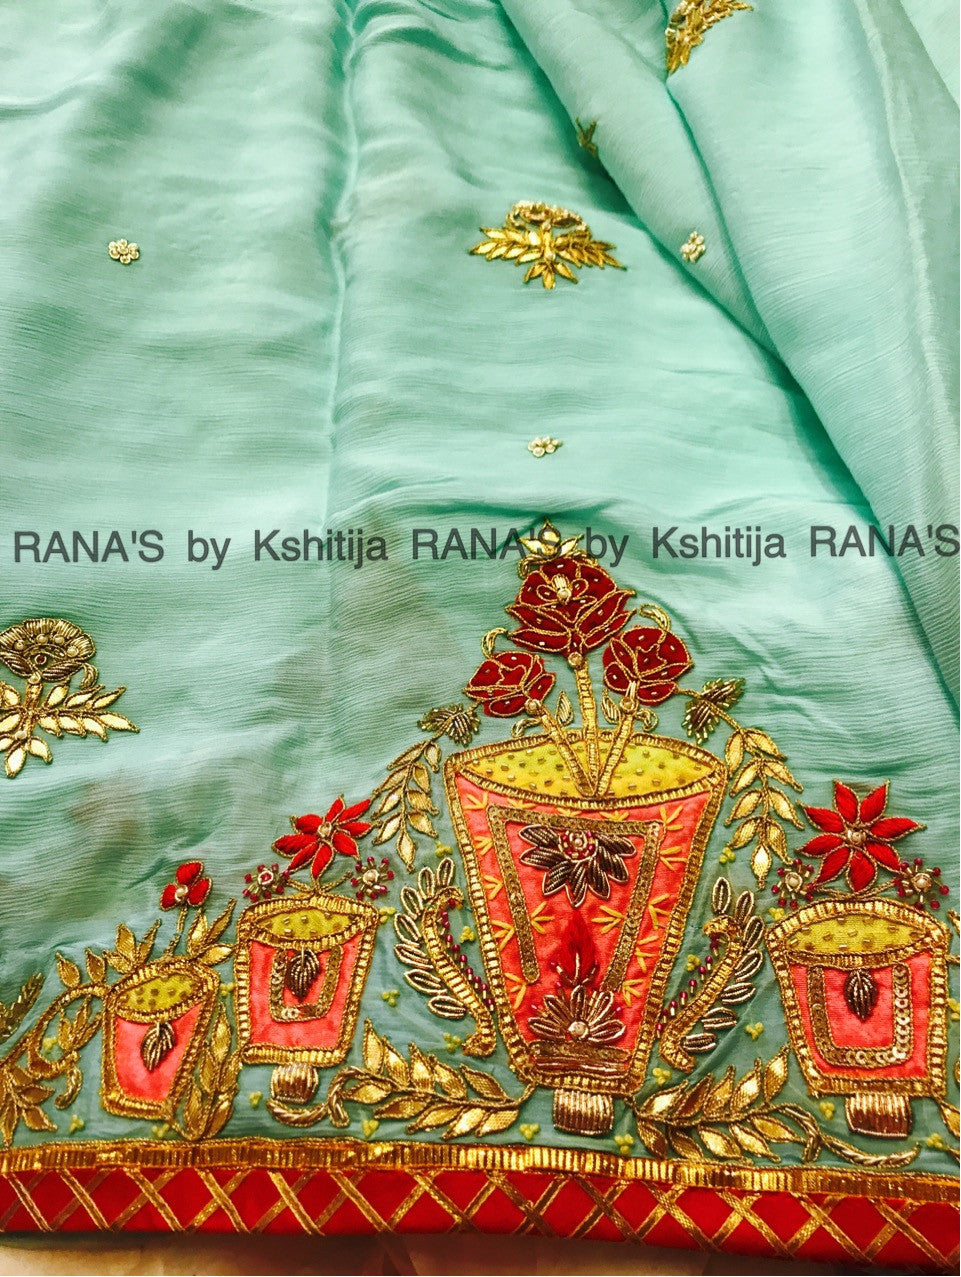 ranas-by-kshitija-mint-blue-new-designer-saree